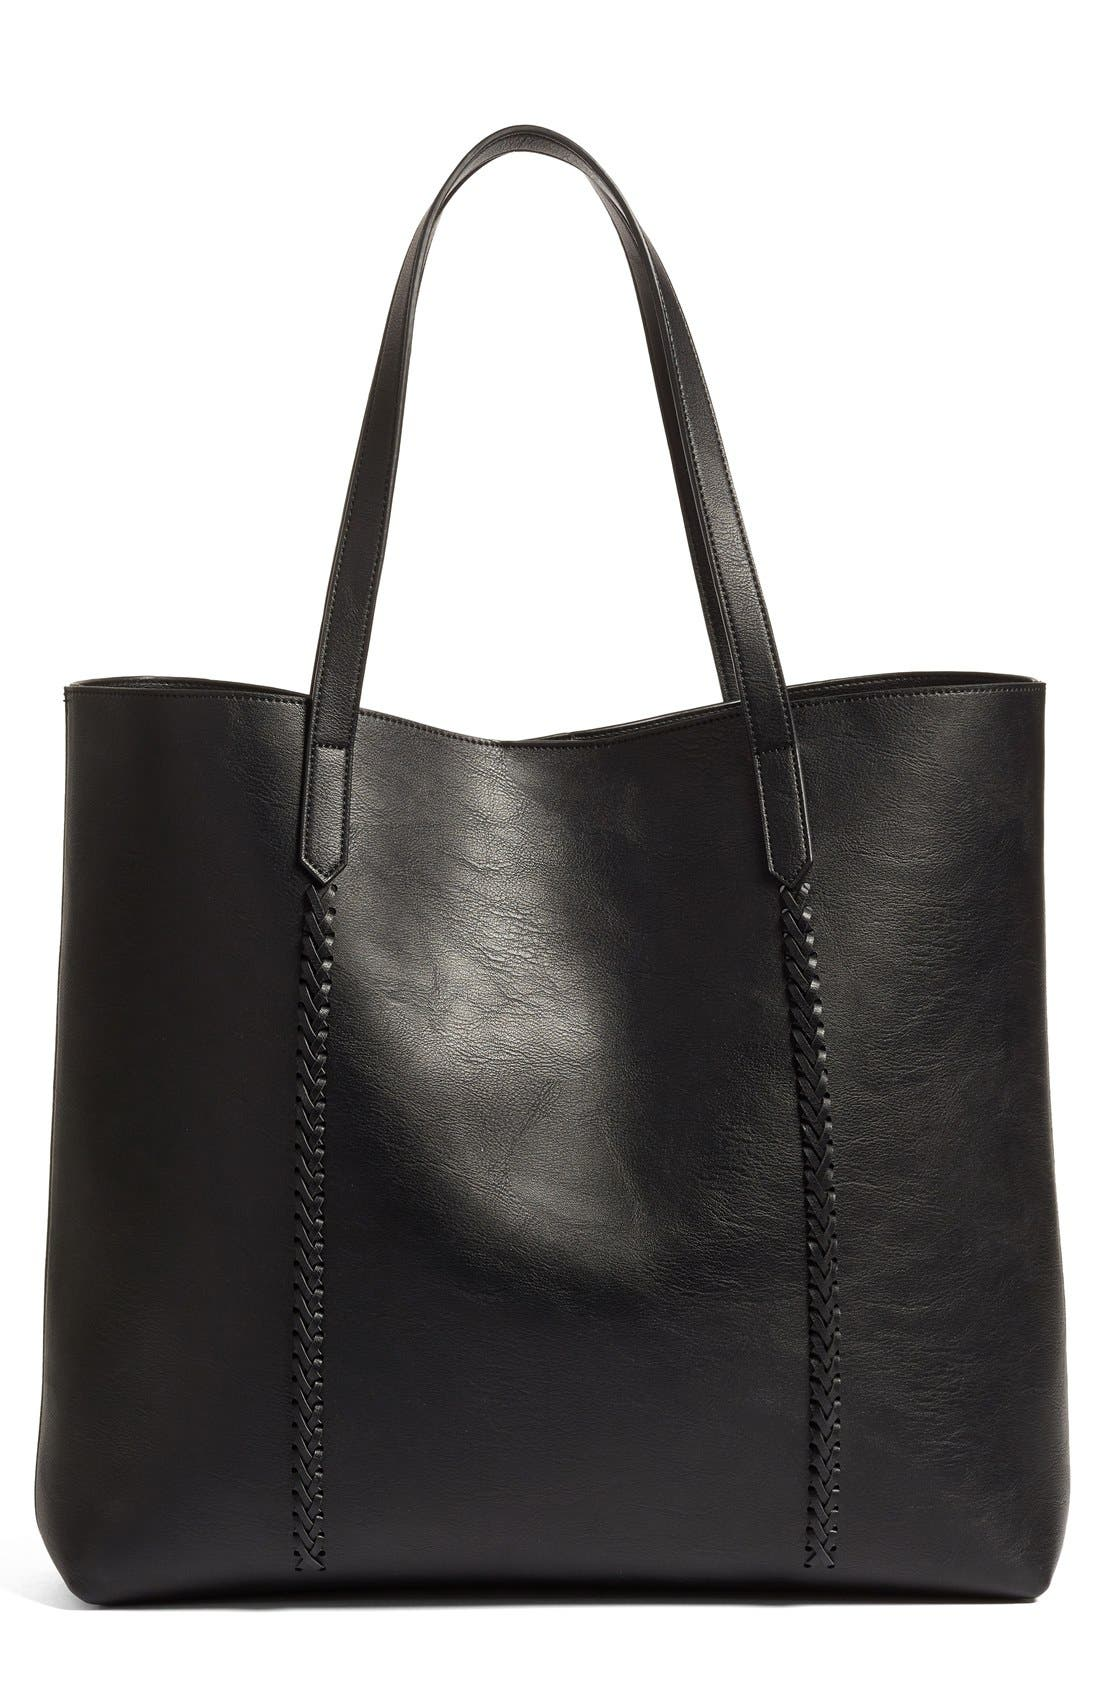 Alternate Image 1 Selected - Phase 3 Faux Leather Tote